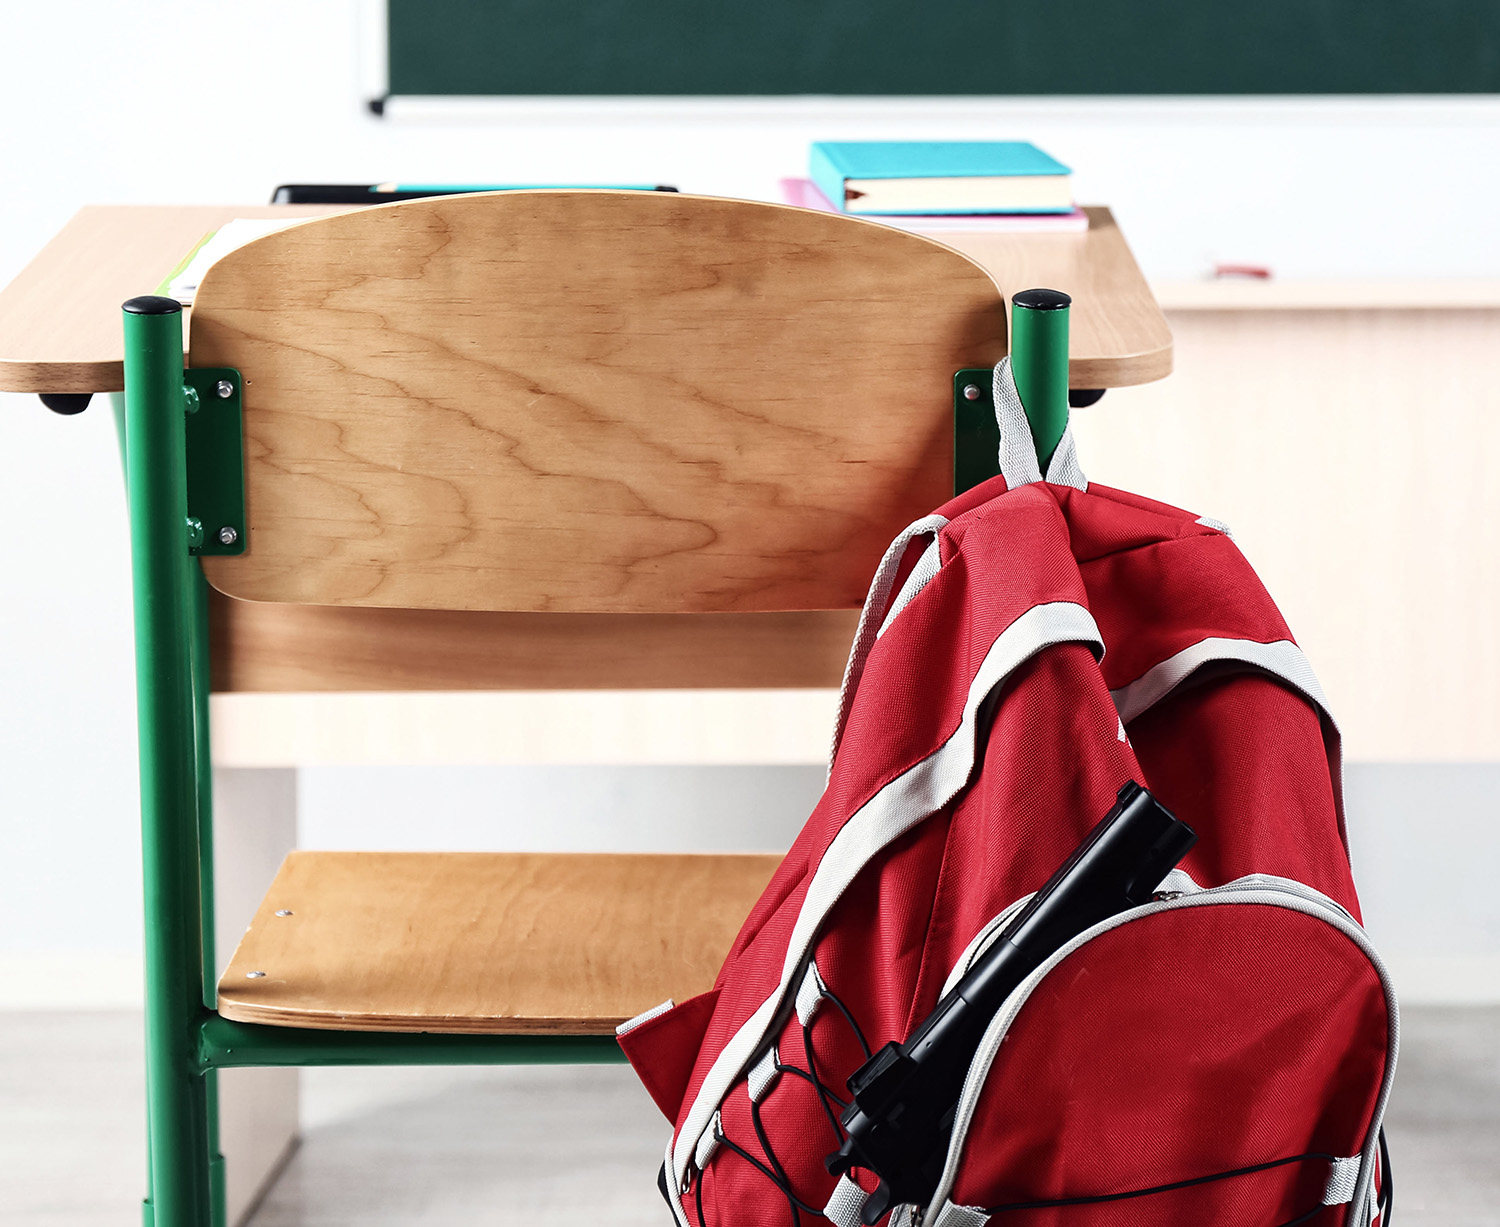 One student was killed and another injured in a school shooting in Alabama on Wednesday afternoon, officials said. Africa Studio/Shutterstock